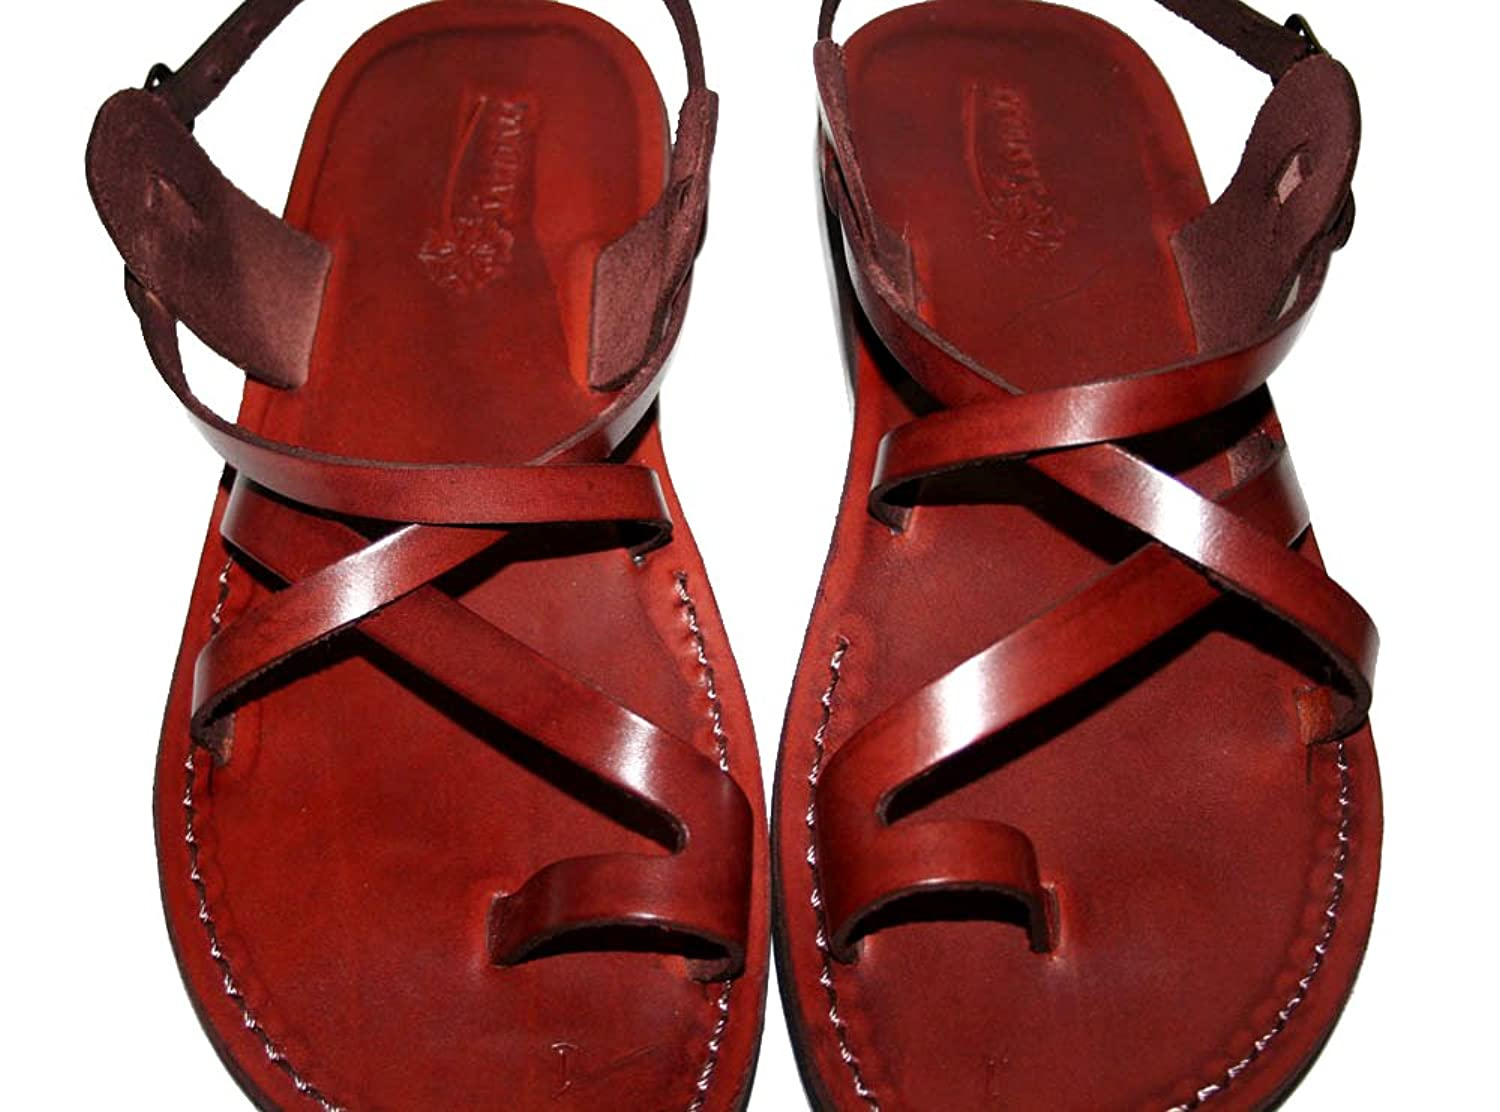 Brown Roxy Unisex Leather Sandals / Genuine Handmade Leather Holy Land Biblical Jesus Sandals